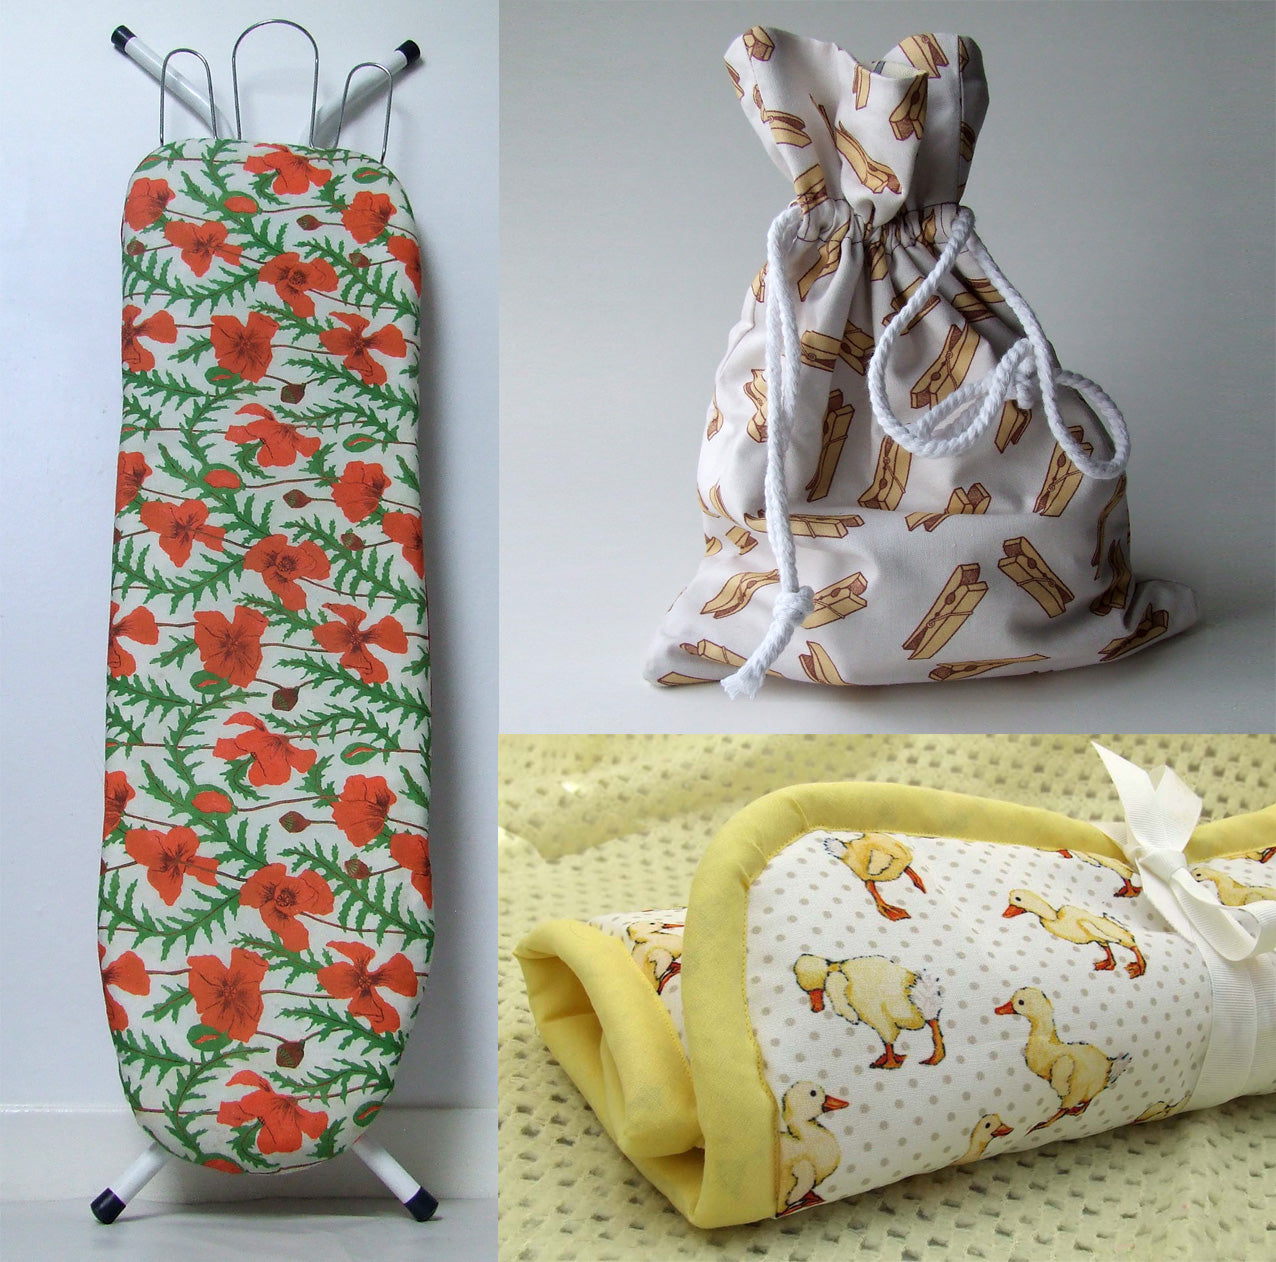 Utility items made out of Three Bears Prints fabric